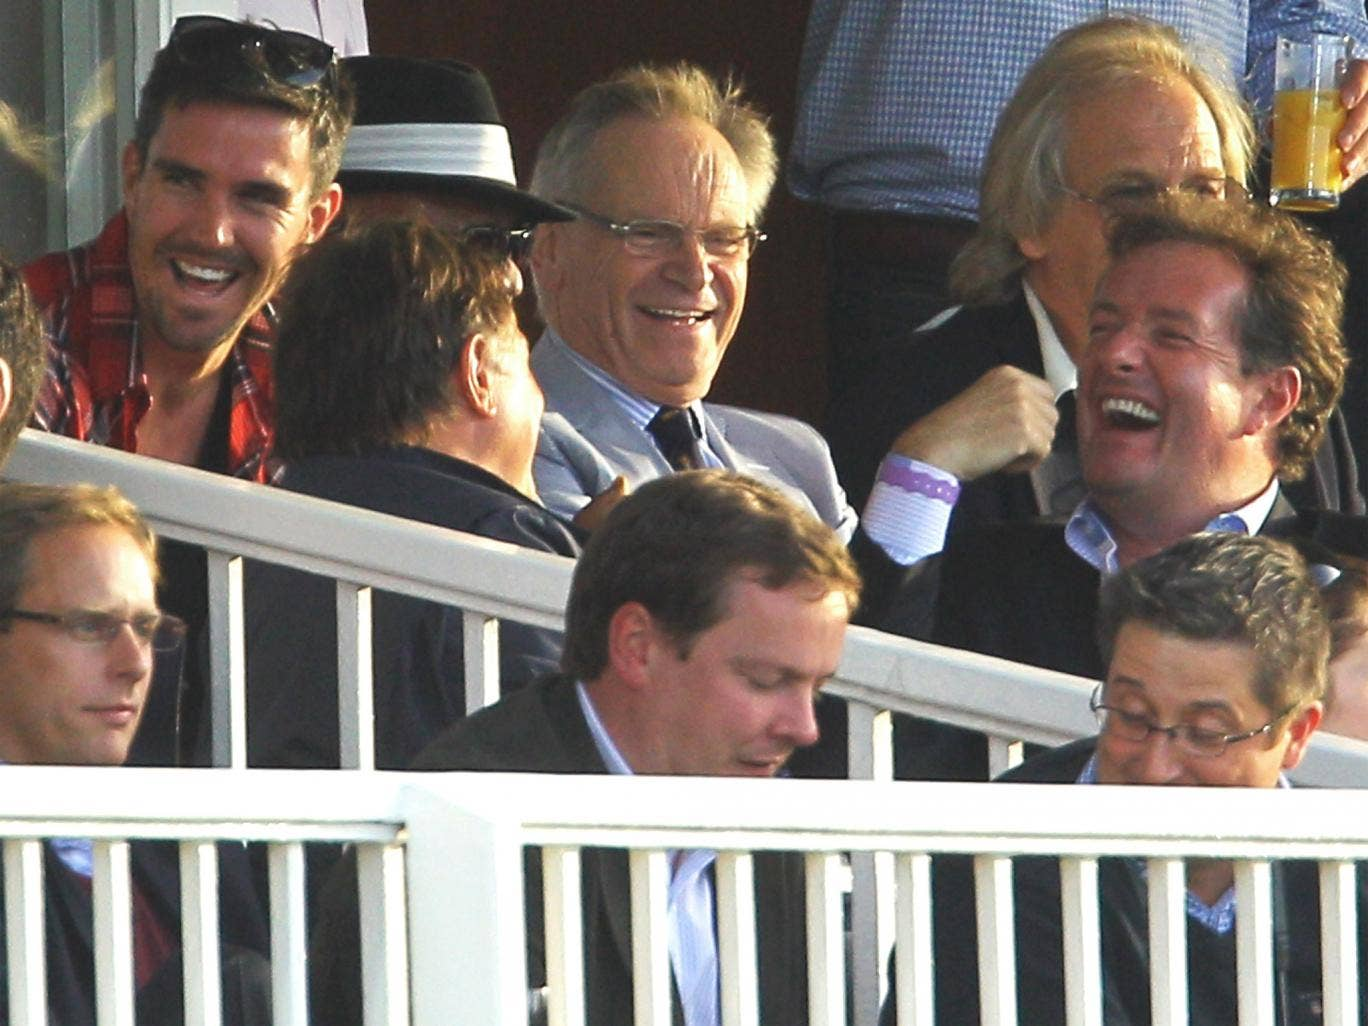 Kevin Pietersen (left) with the novelist Jeffrey Archer (centre) and broadcaster Piers Morgan (right) at Lord's in 2010